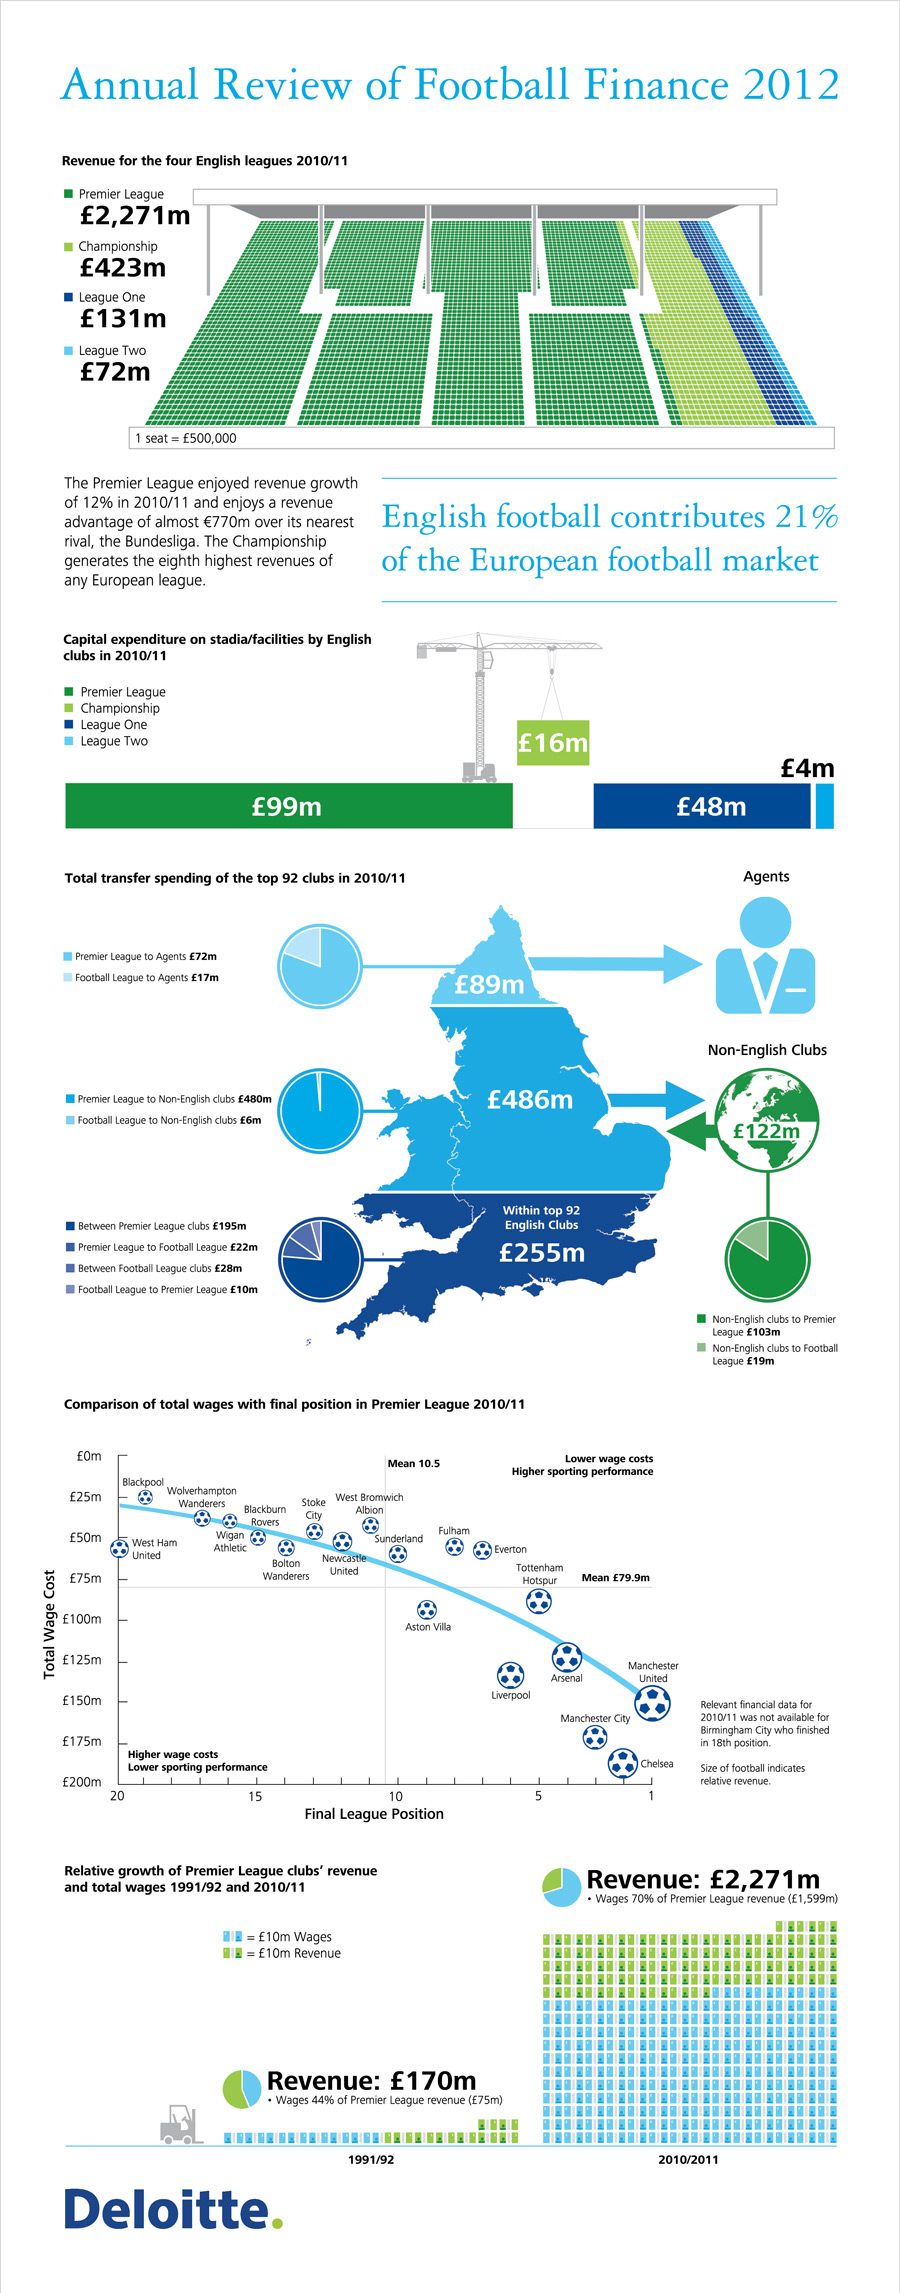 Annual-Review-Of-Football-Finance-2012-infographic